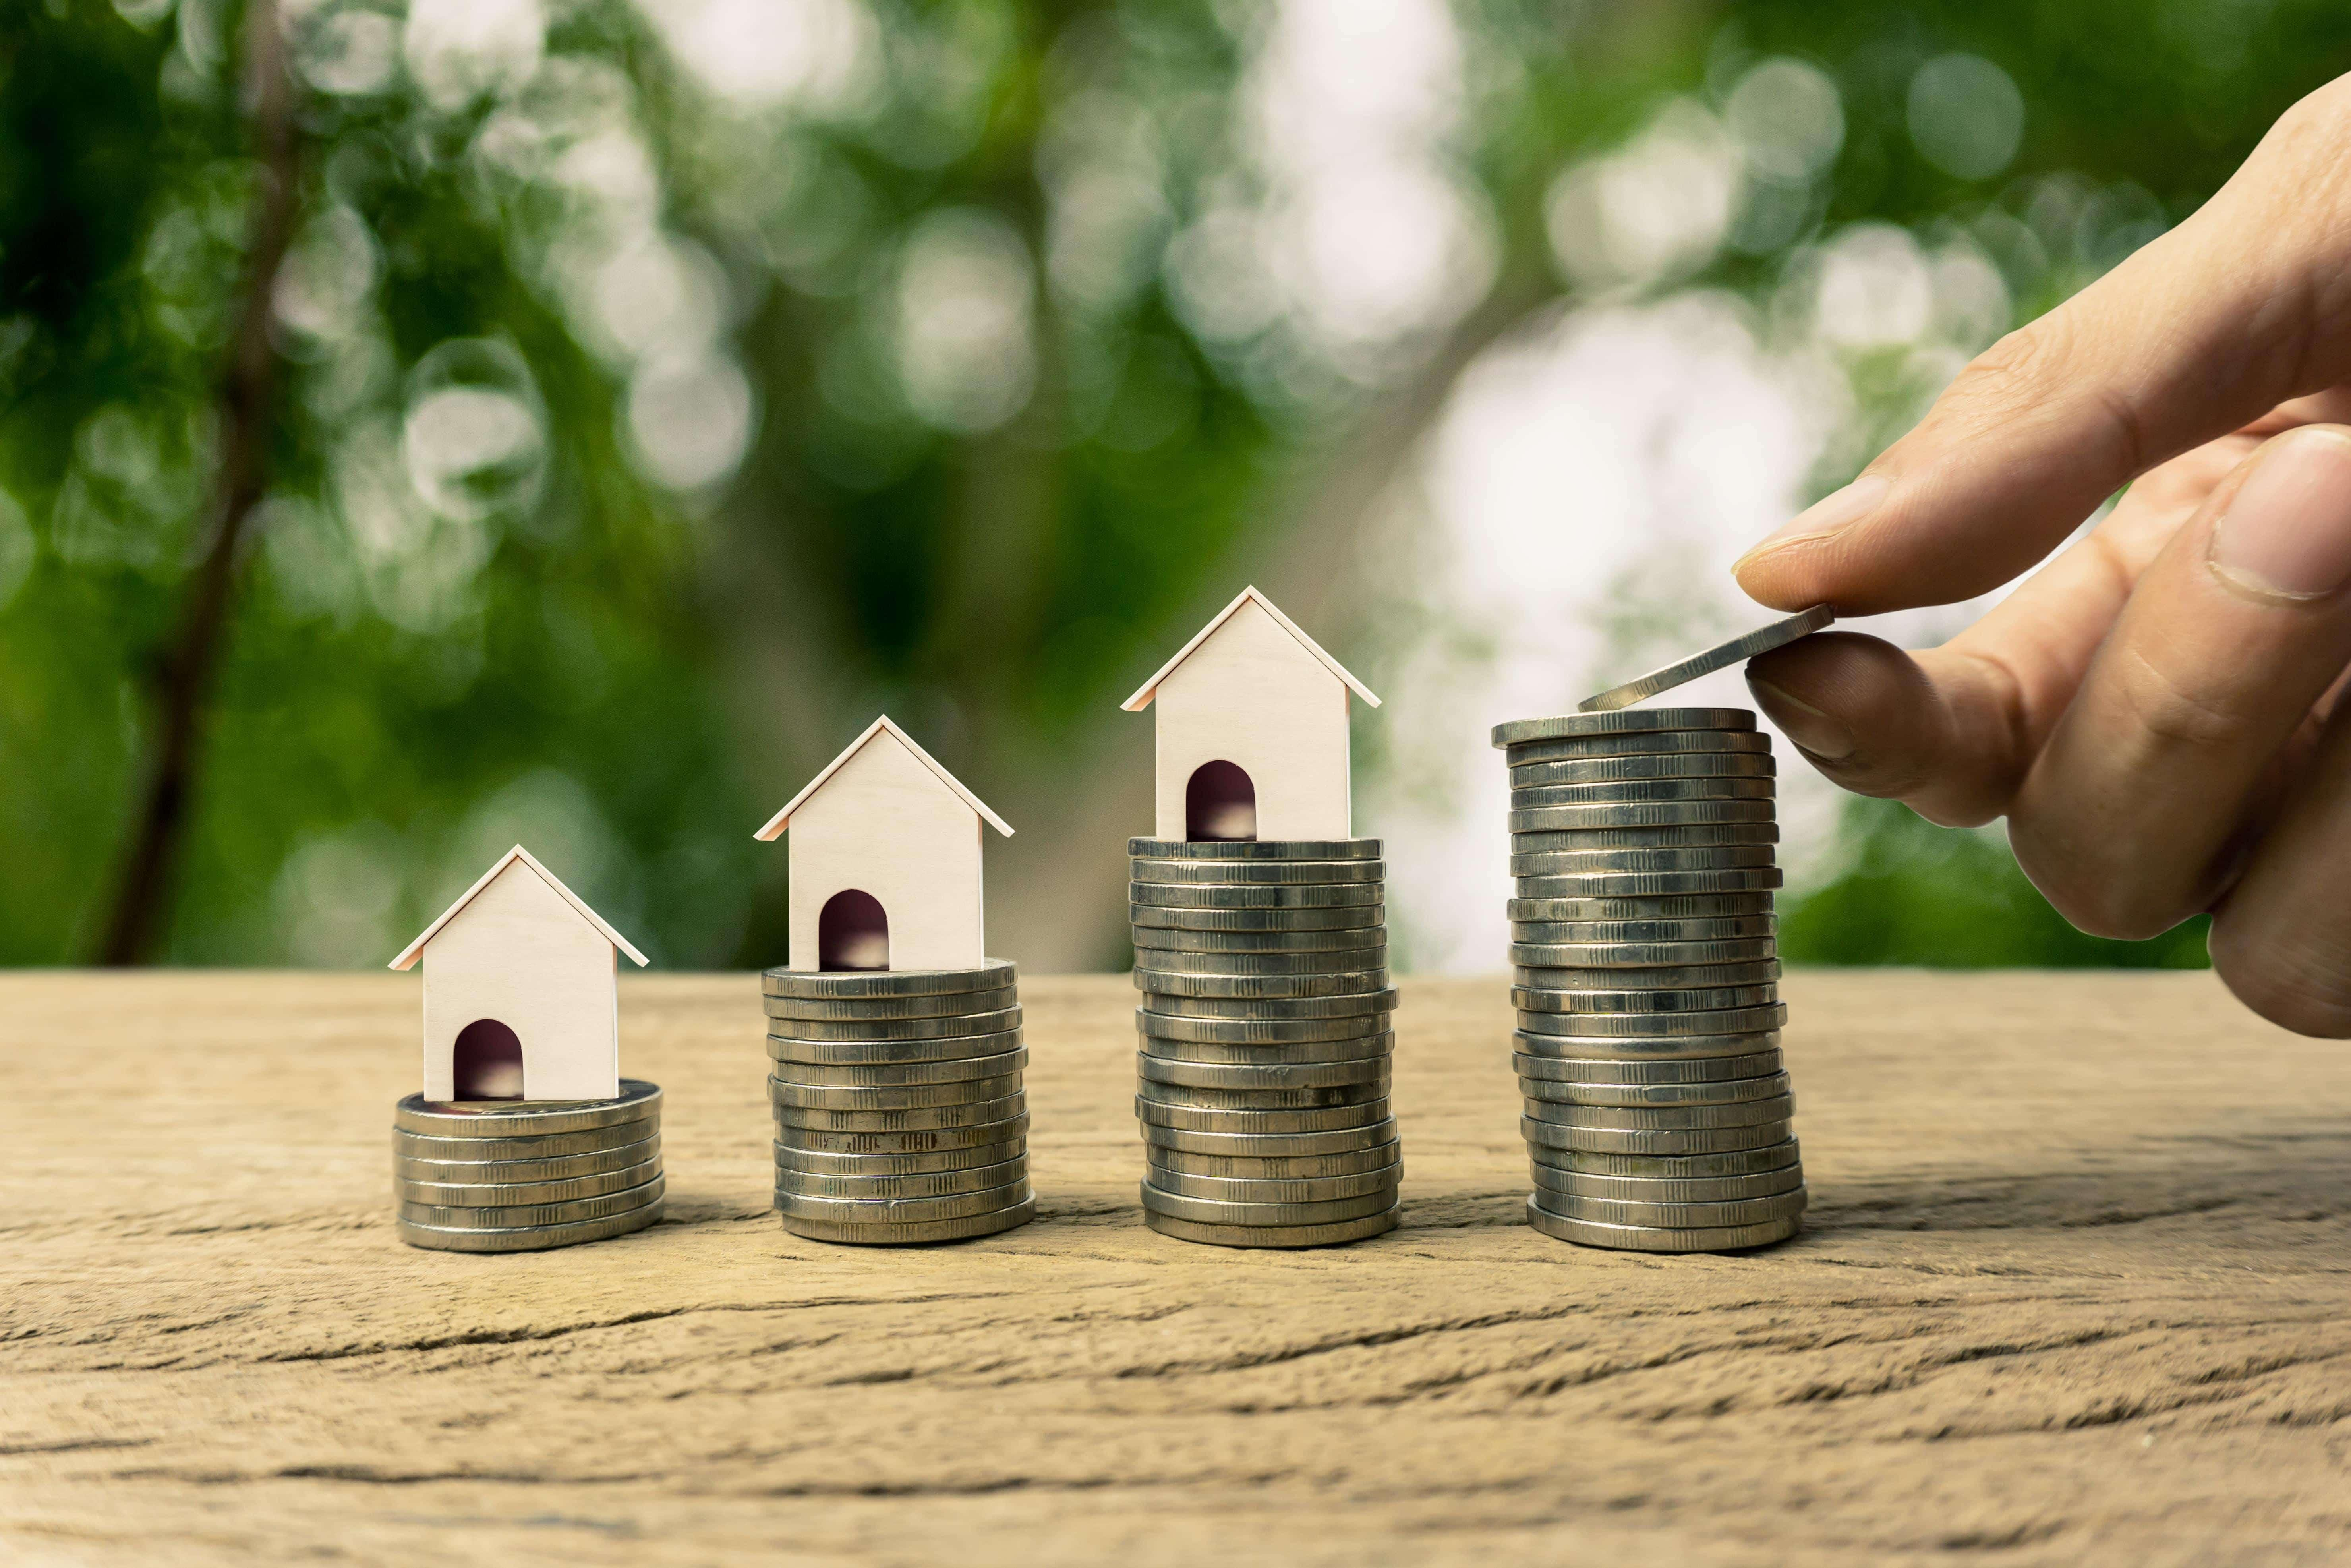 Creating wealth through efficient tax strategy